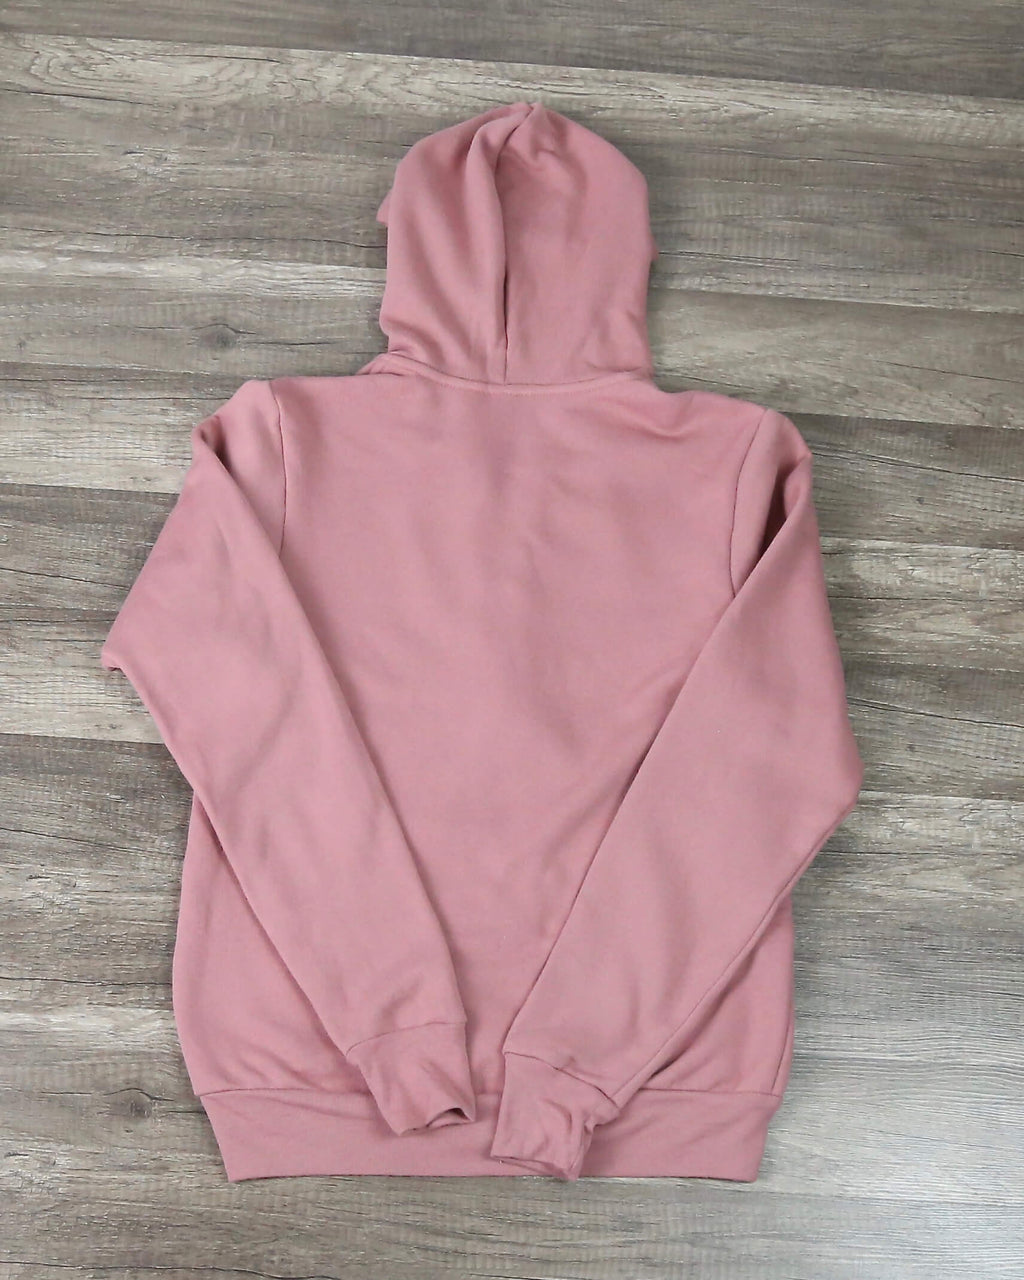 Distracted - Unisex Sponge Fleece Full-Zip Hoodie - Mauve